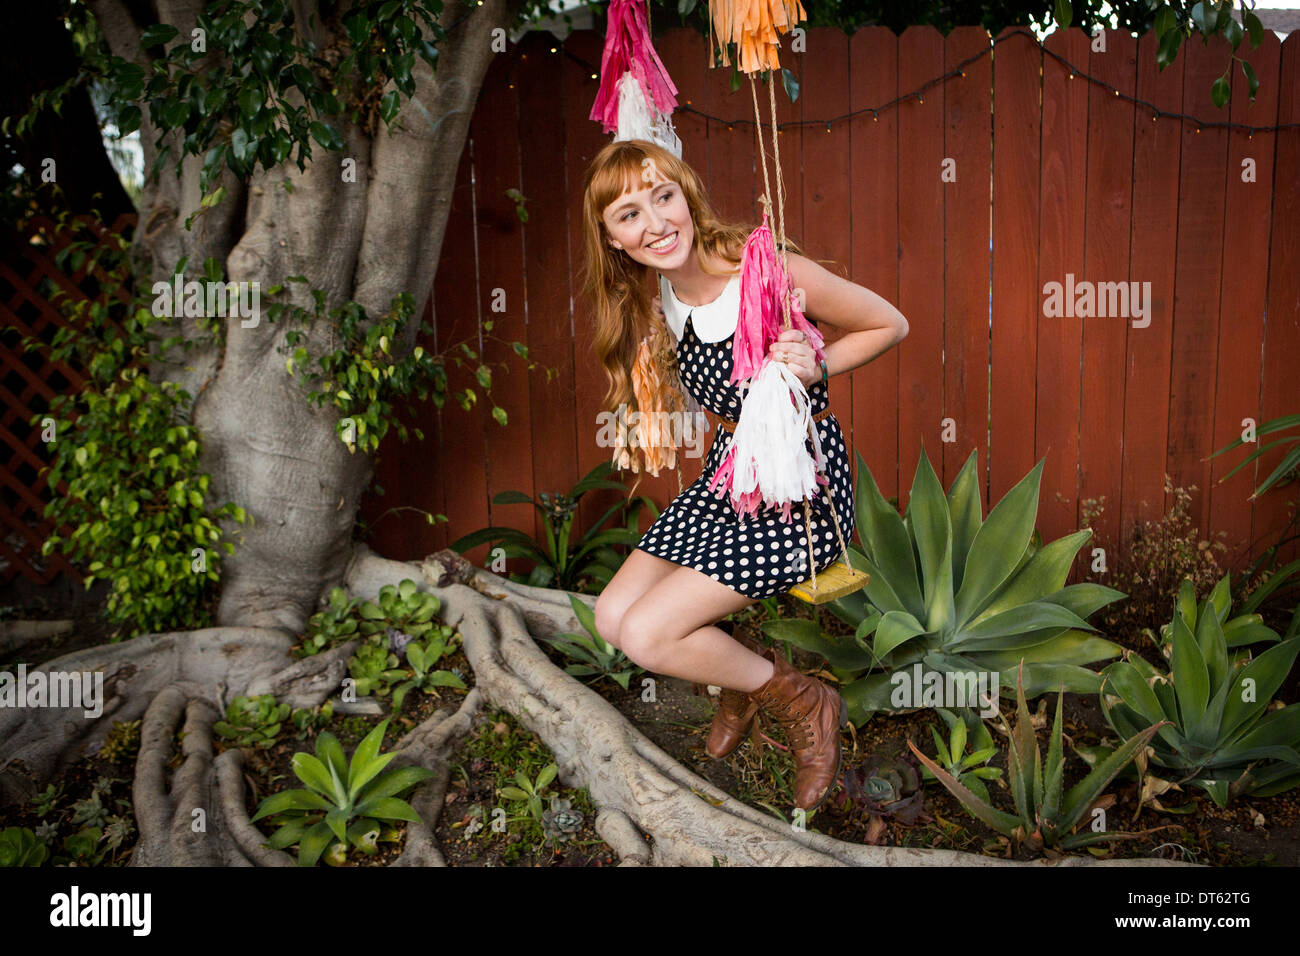 Young woman sitting on swing in garden Photo Stock